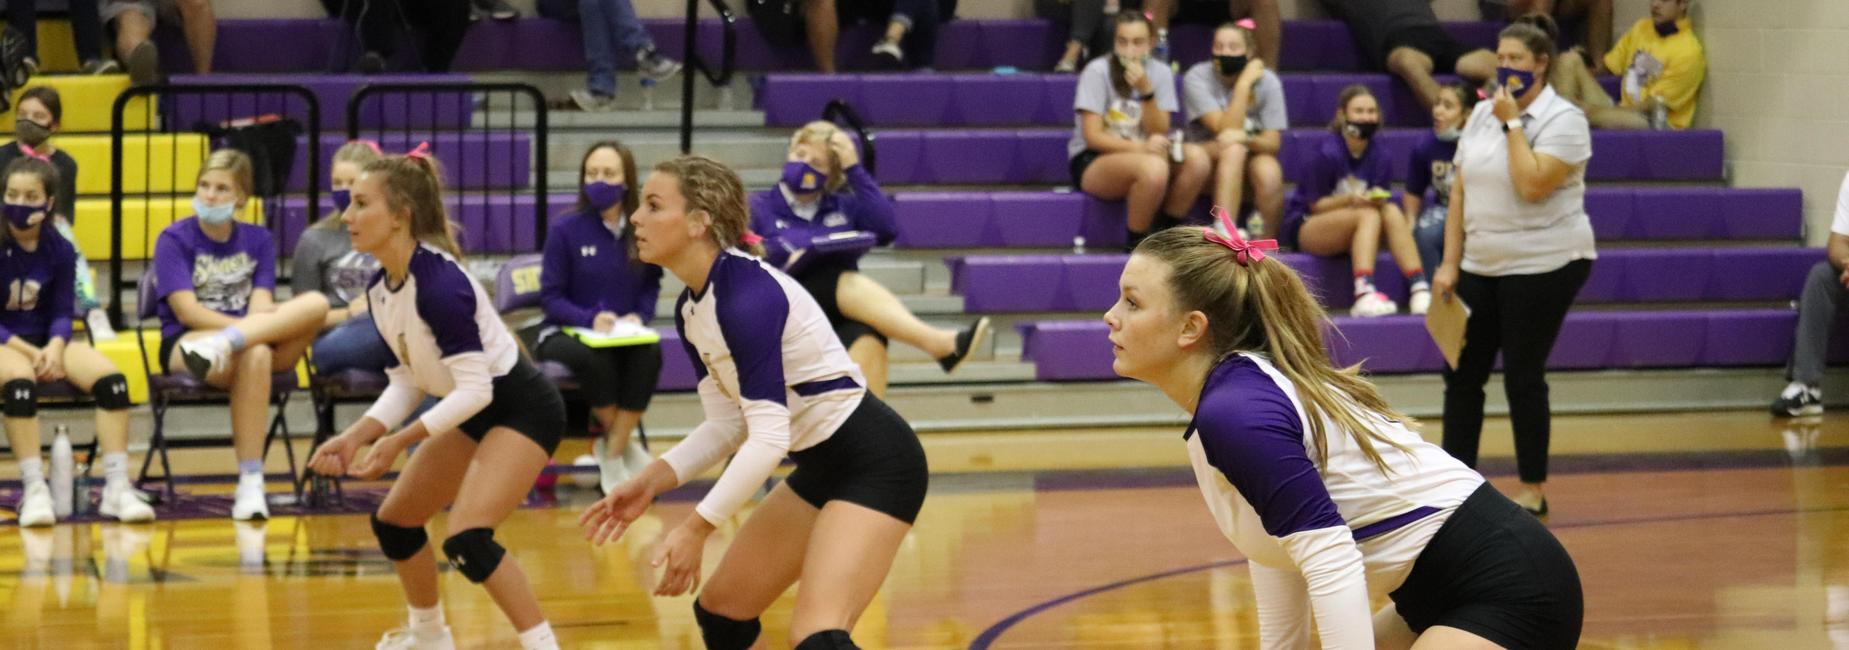 lady comanches volleyball